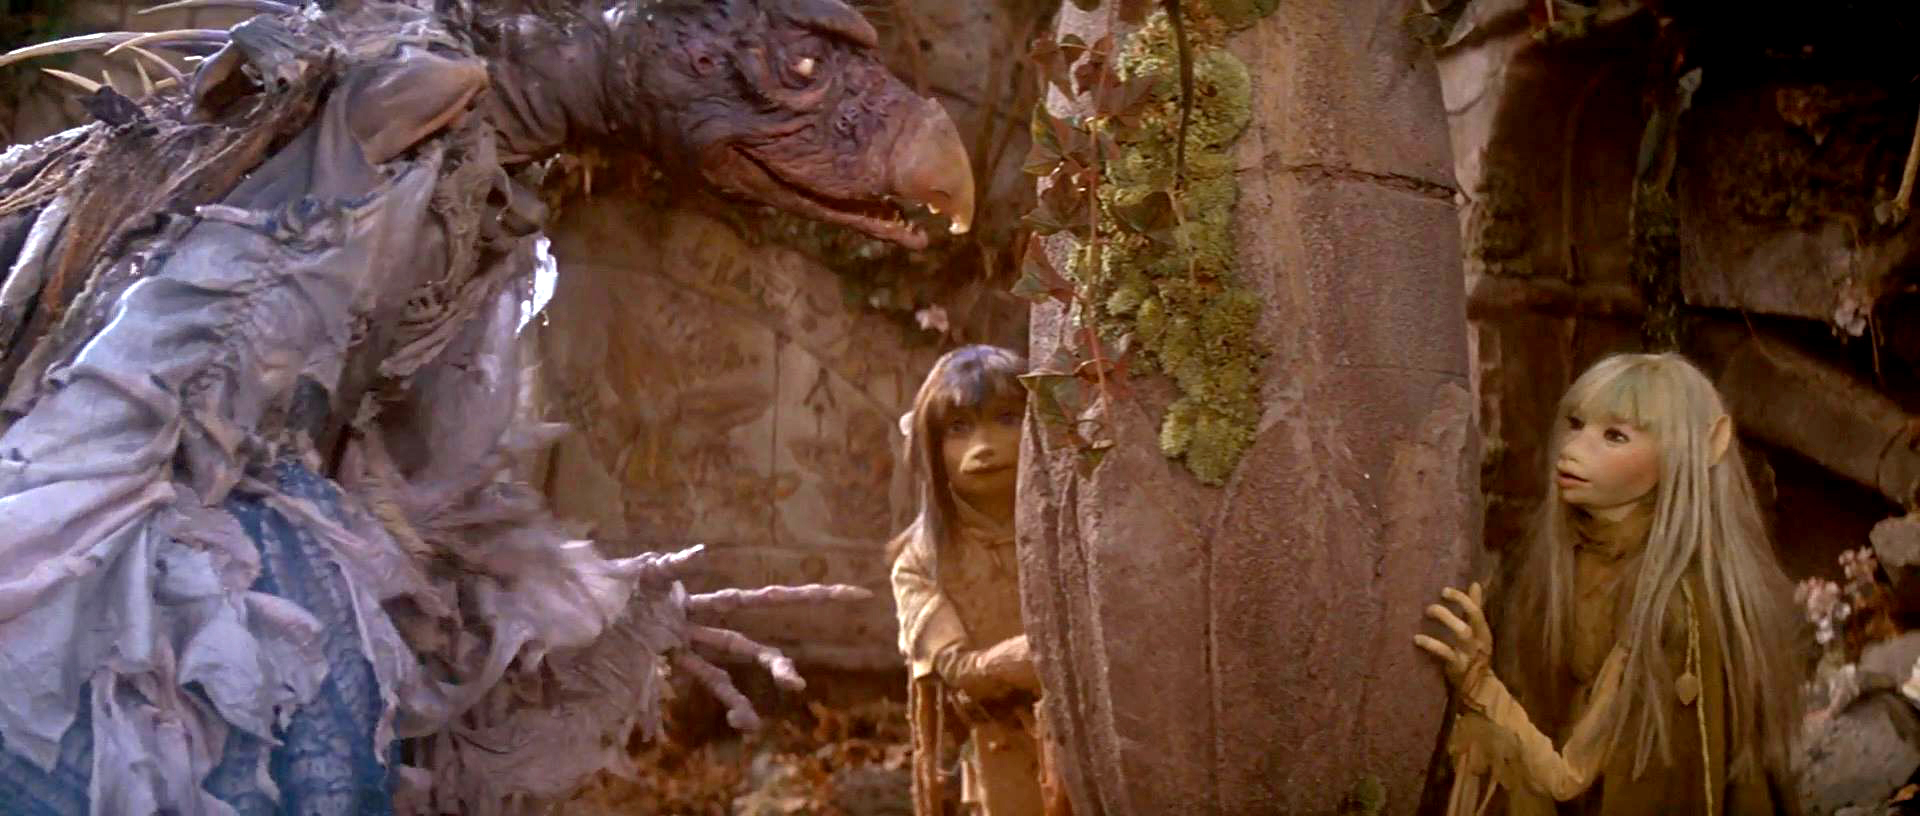 The Dark Crystal - Skeksis & Gelflings